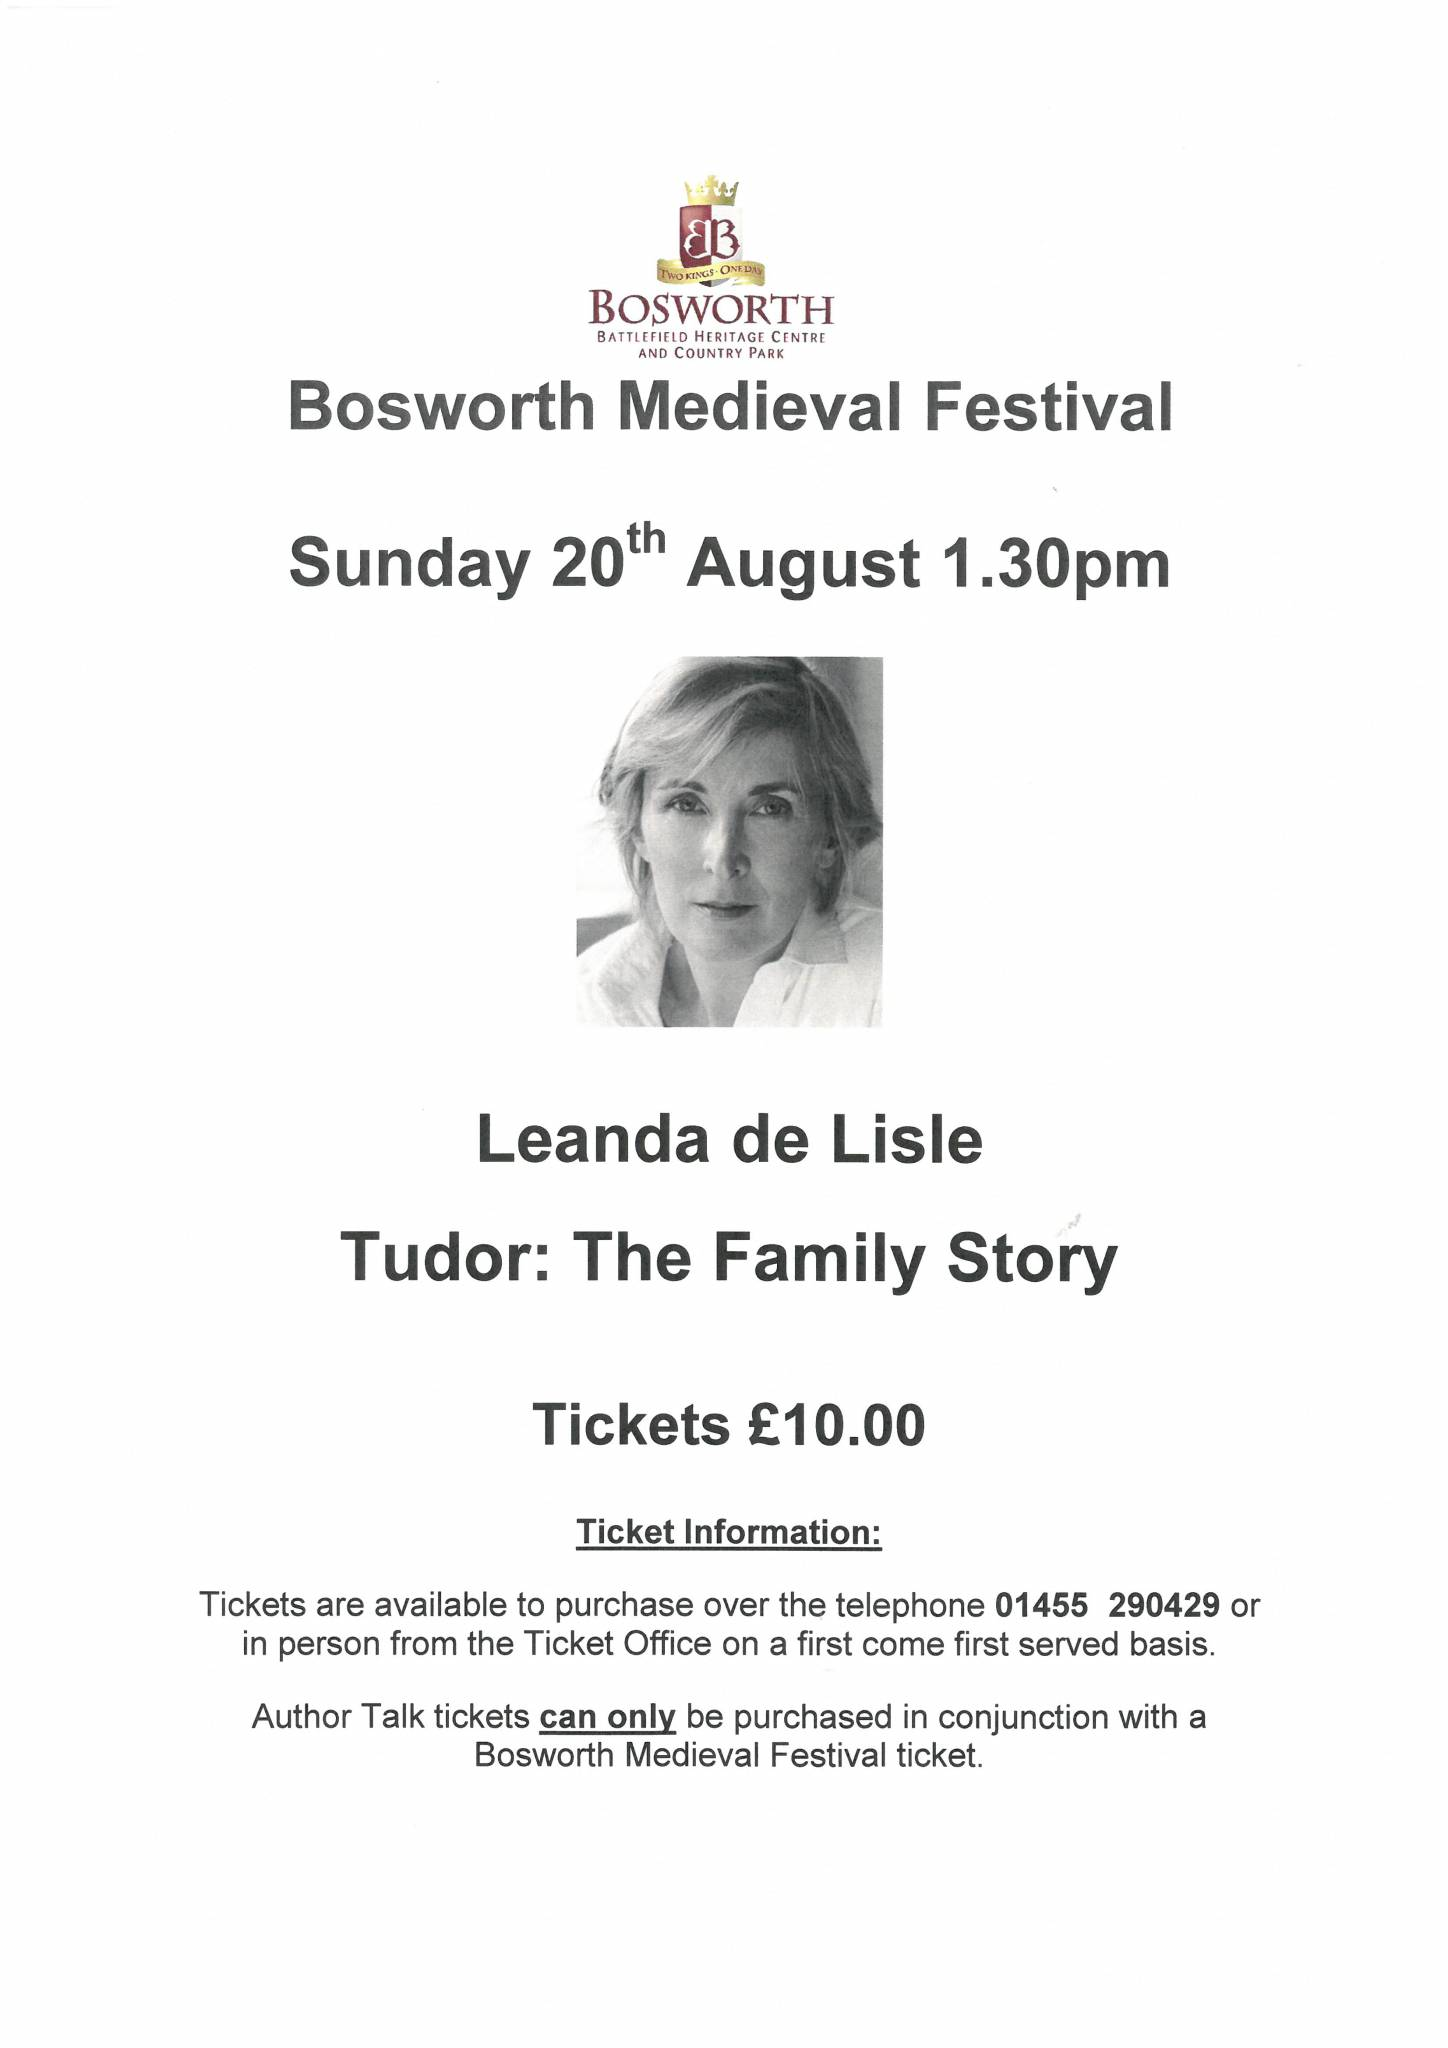 Leanda de Lisle Talk - Tudor: The Family Story